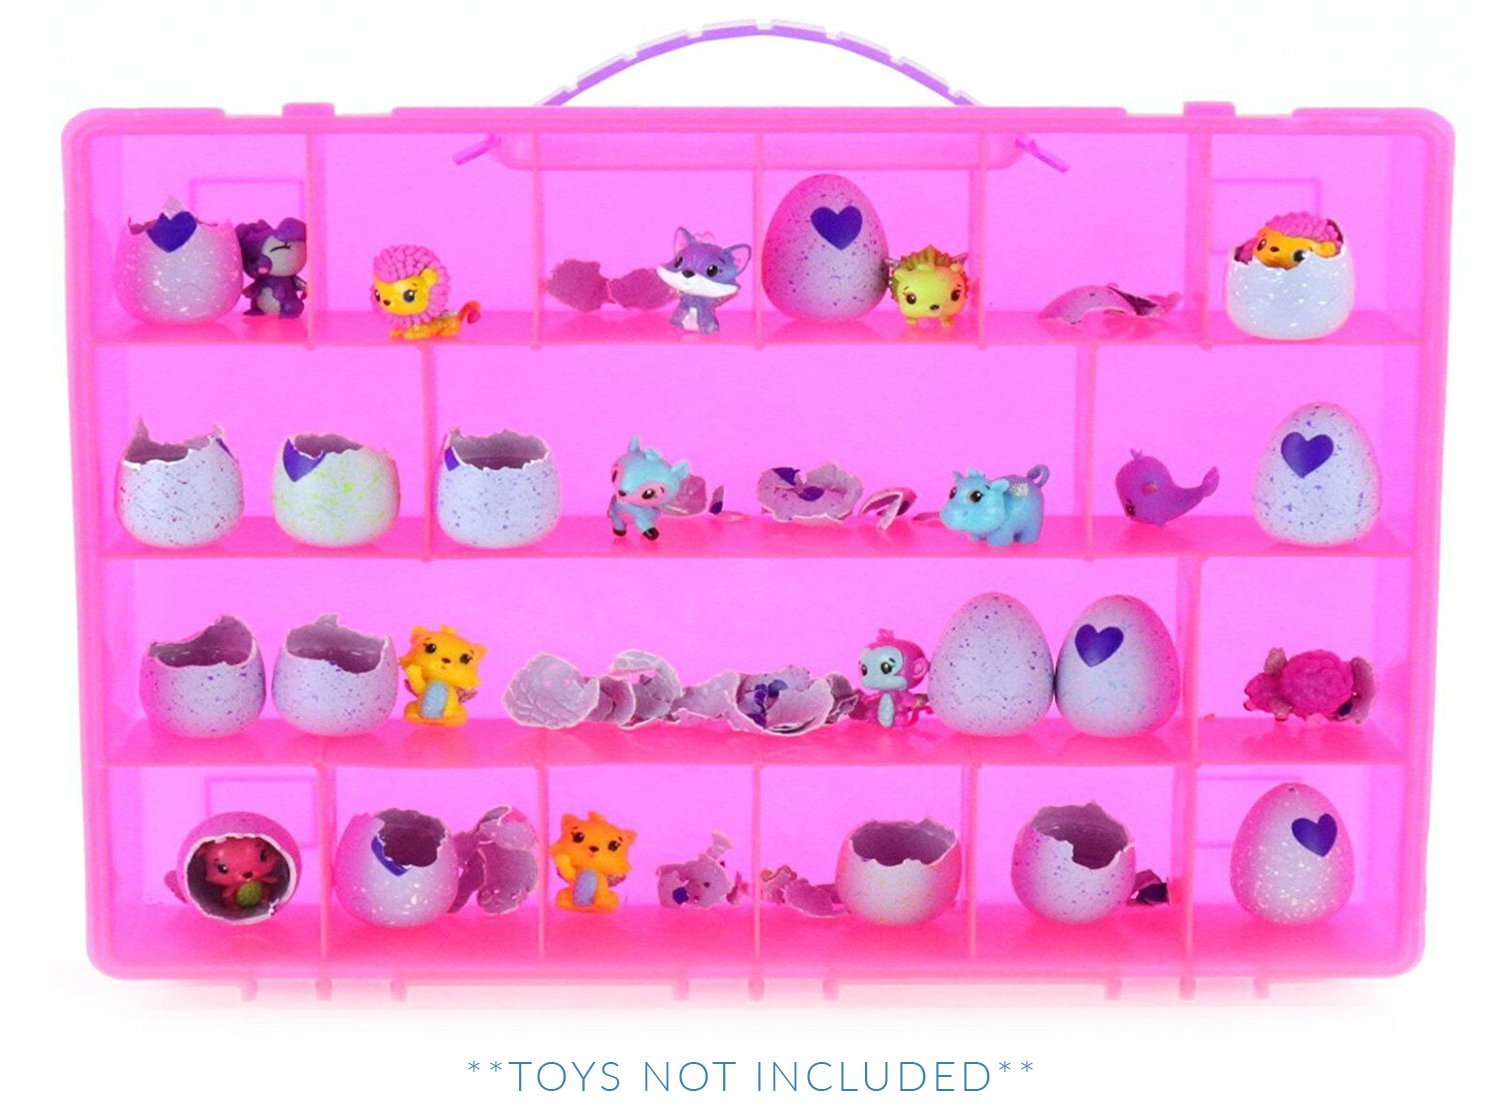 Life Made Better My Egg Crate Storage Organizer compatible the Hatchimals Hatchimal Colleggtibles brands - Durable Carrying Case Mini Eggs, Easter Eggs & Speckled Eggs – Pink LMB66